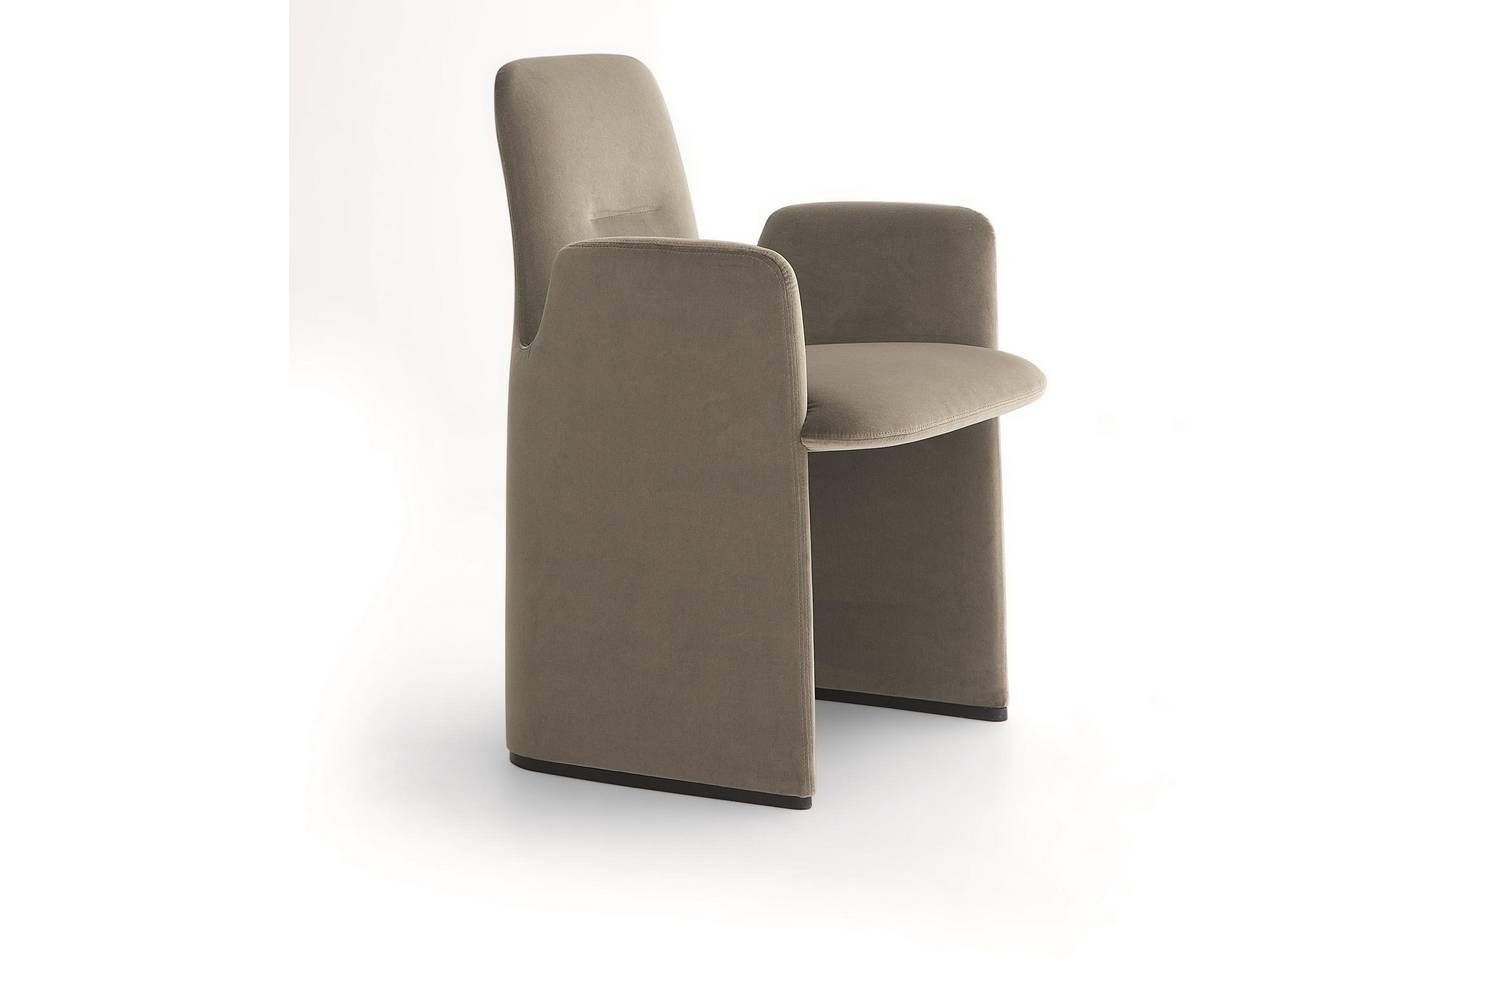 Guest Chair by Rodolfo Dordoni for Poliform